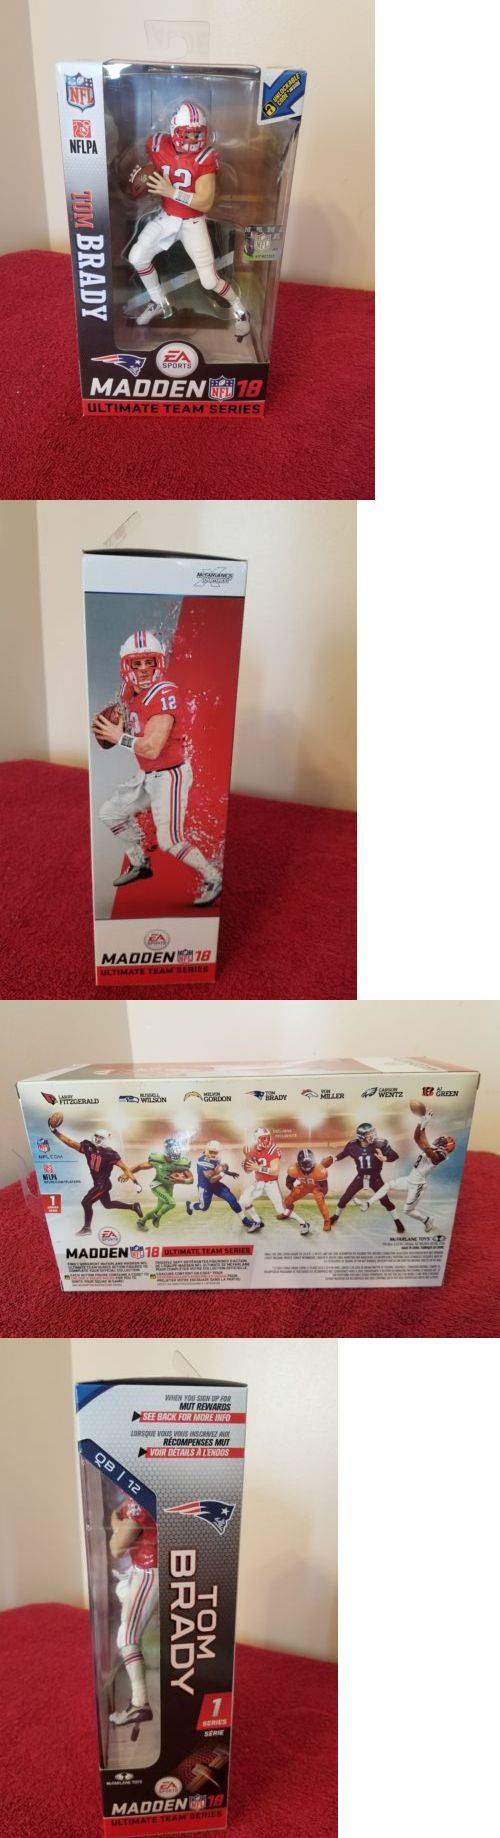 Sports 754: Wwe Madden 18 Ultimate Team Exclusive Tom Brady Figure. Rare. -> BUY IT NOW ONLY: $34.99 on eBay!